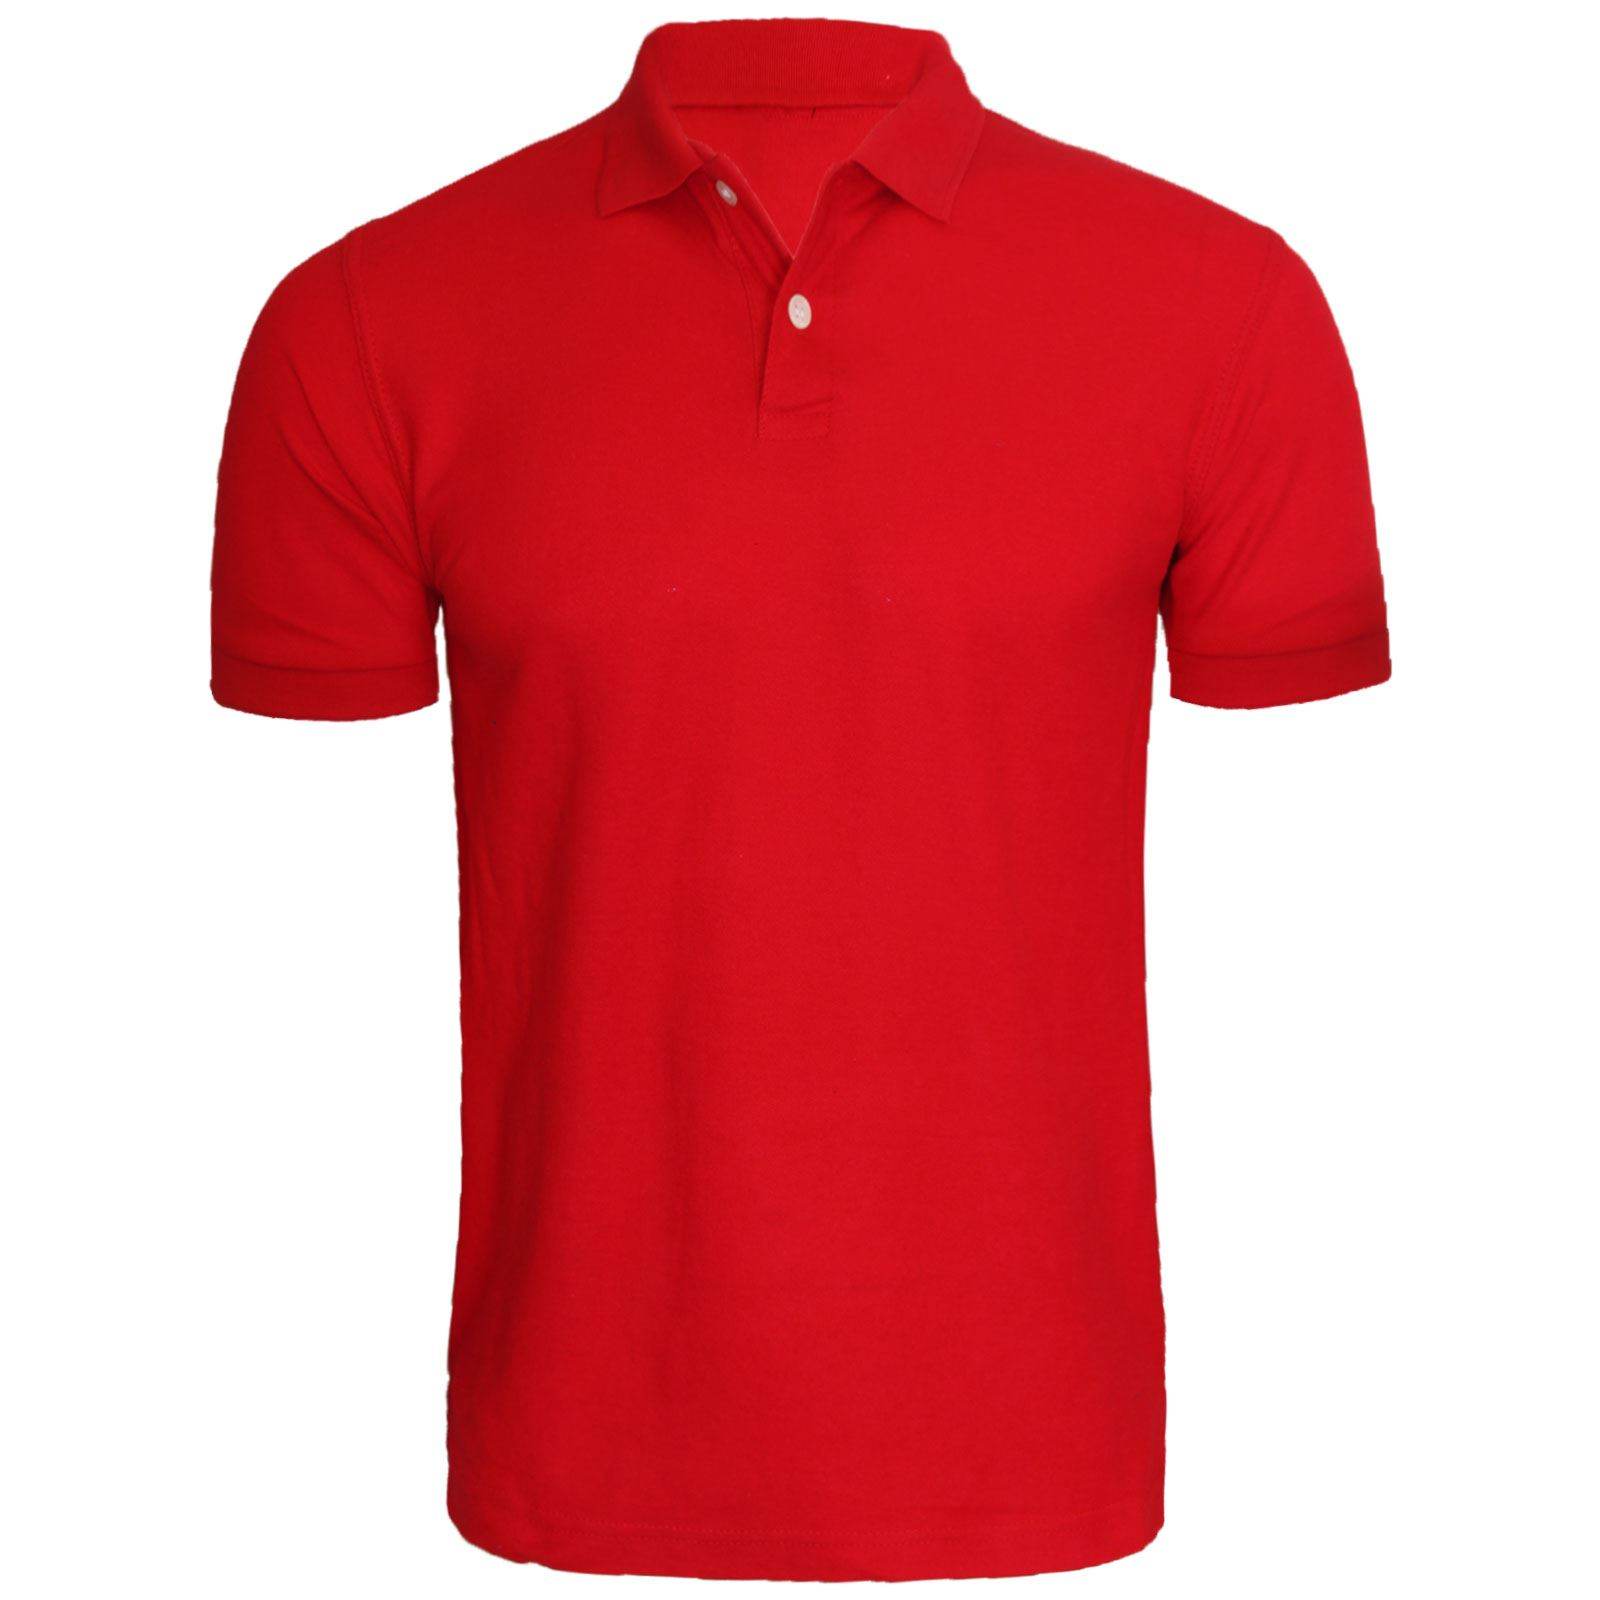 New Mens Short Sleeve Plain Polo Tshirt Top Golf Shirt